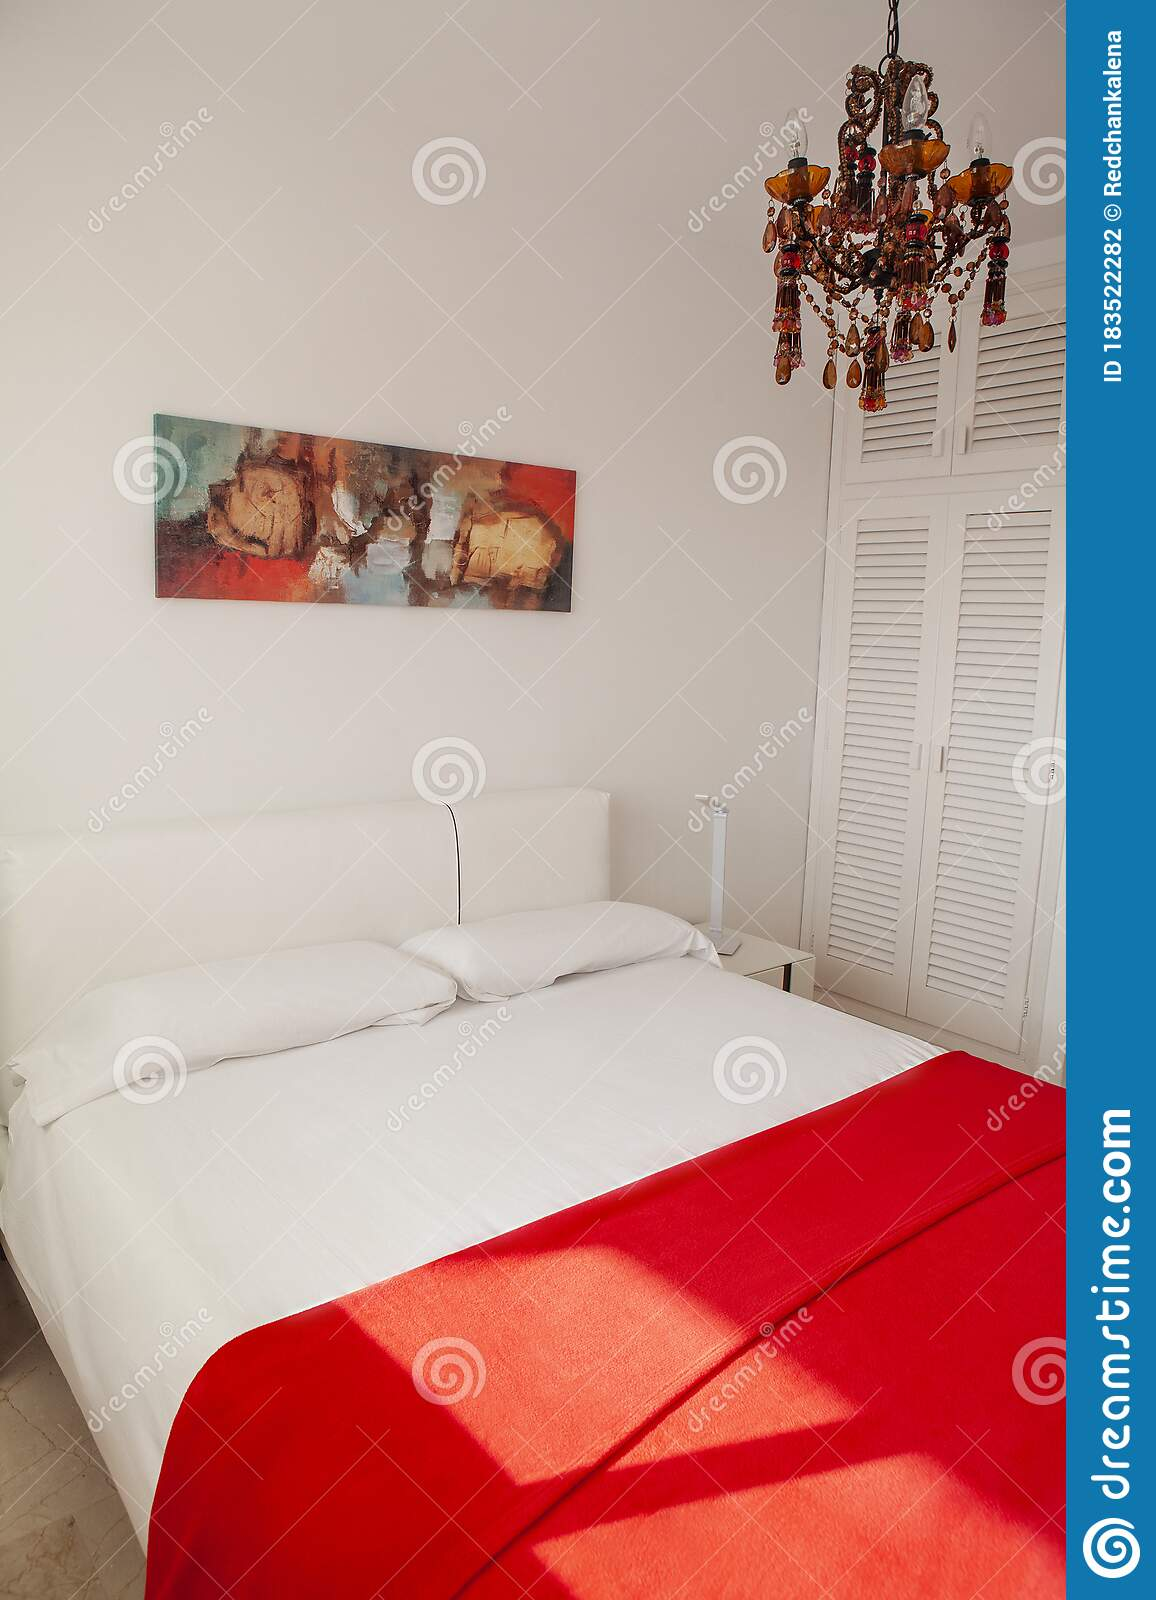 Interior Design In Bedroom Of Pool Villa With Cozy King Bed Bedroom With Red And White Colors Stock Photo Image Of Mediterranean Apartment 183522282